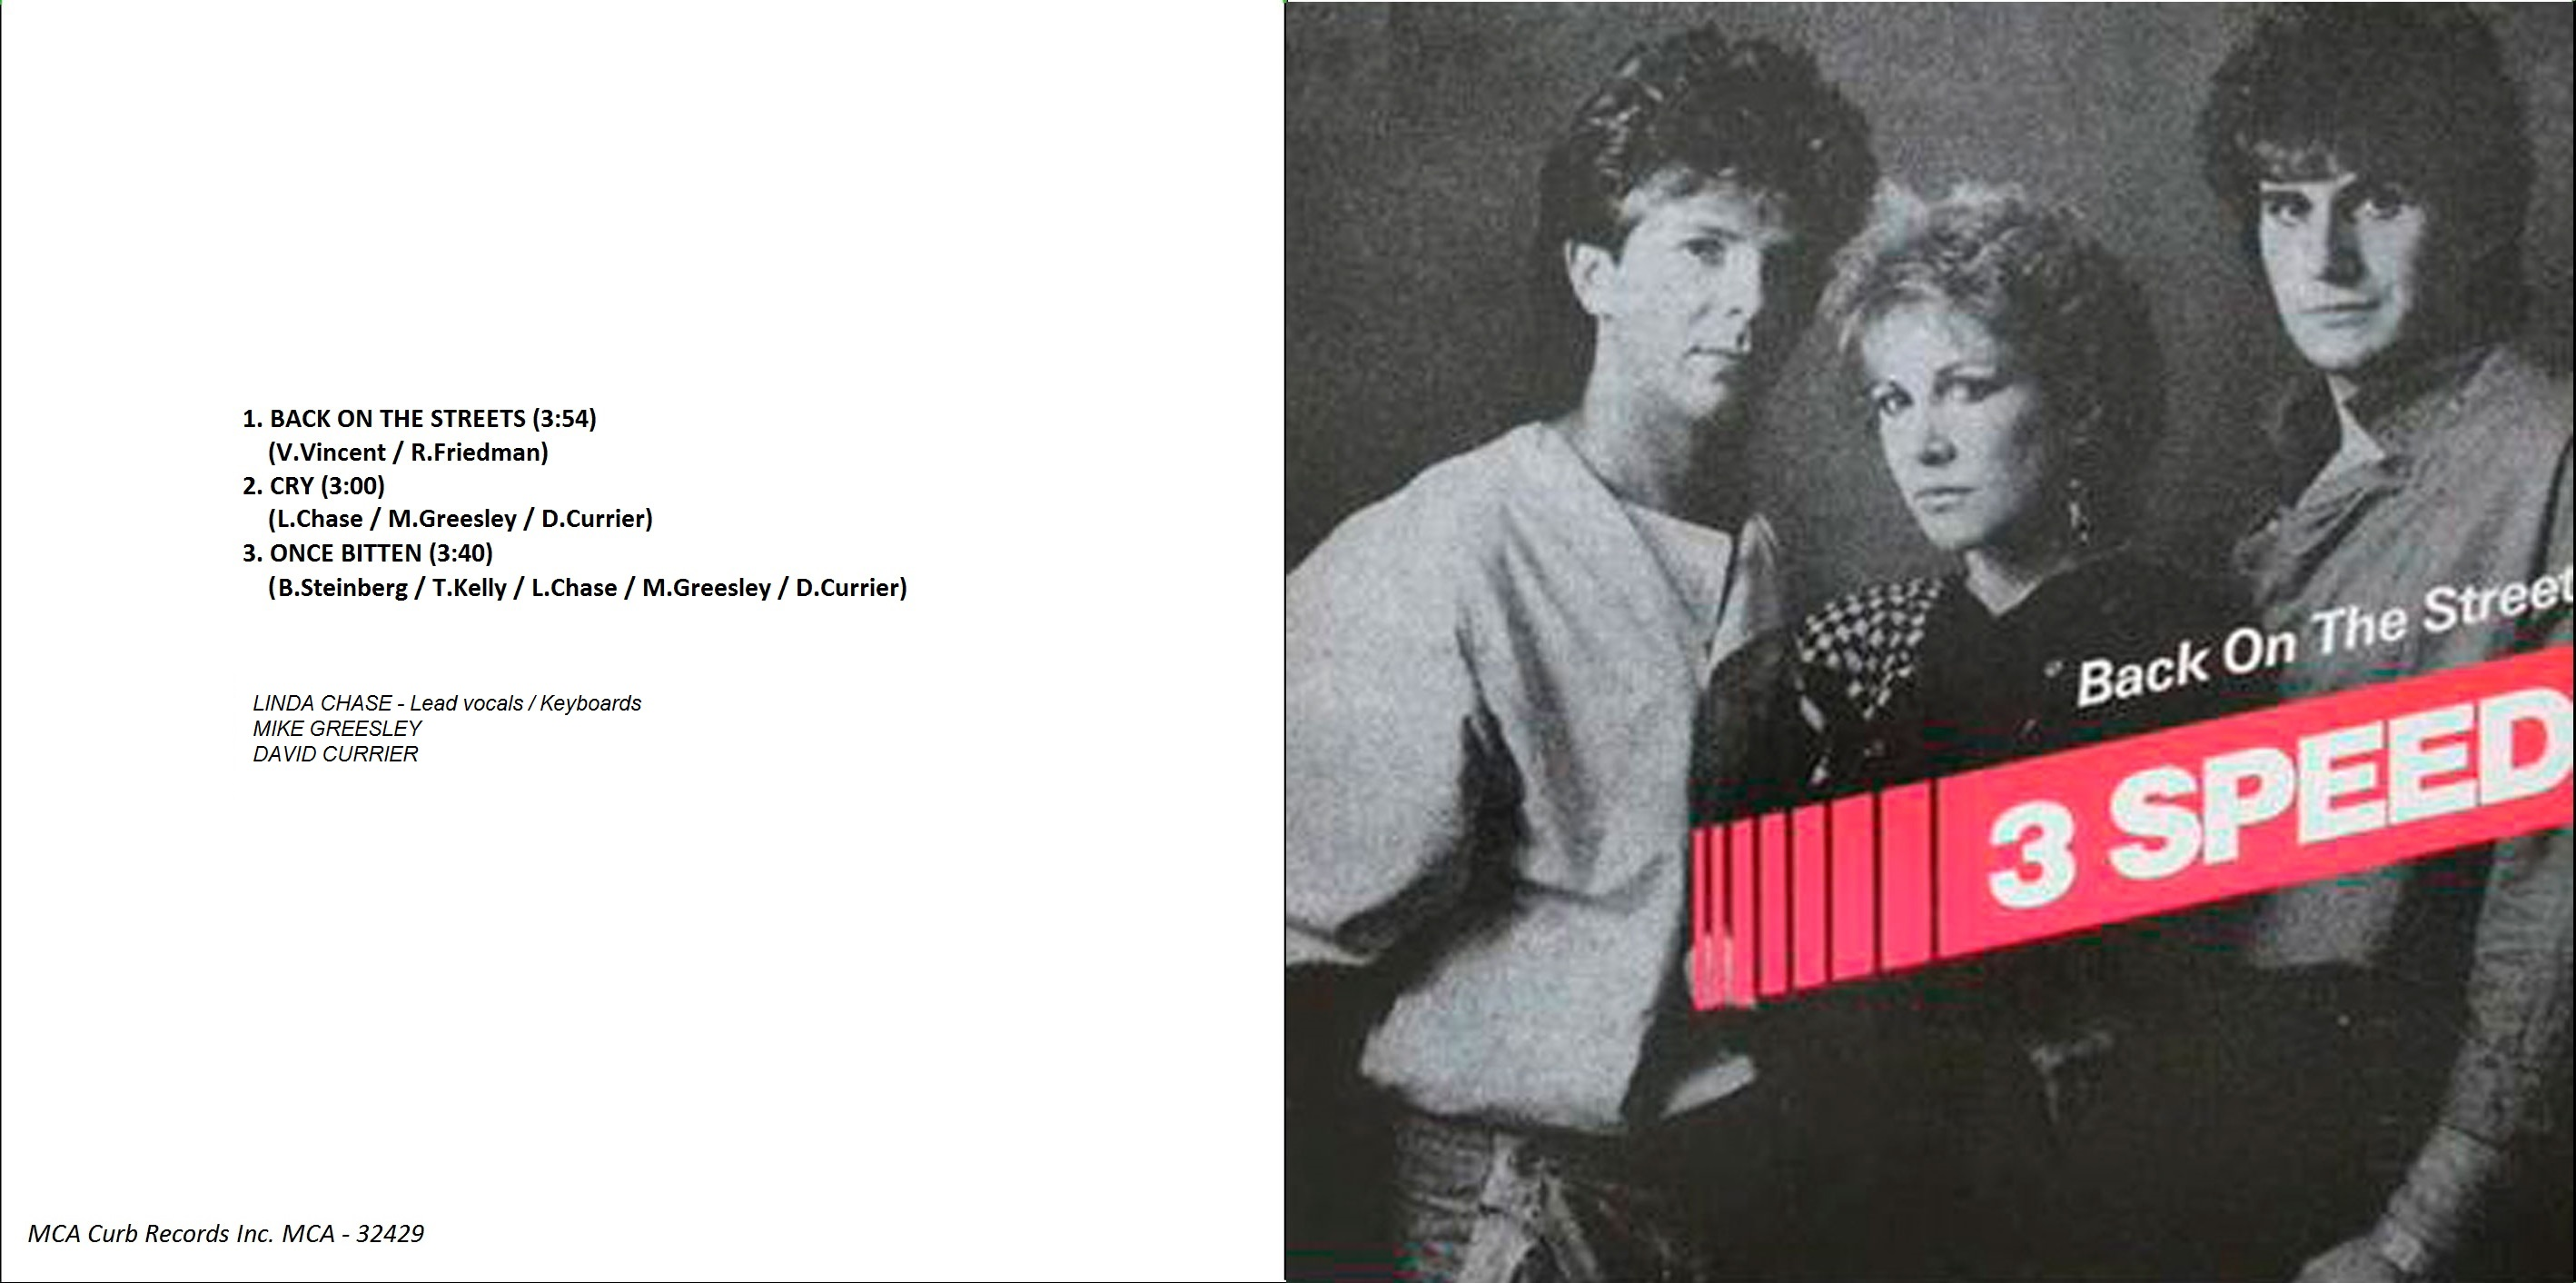 3 Speed (12 inch single) album front cover, 1984.jpg